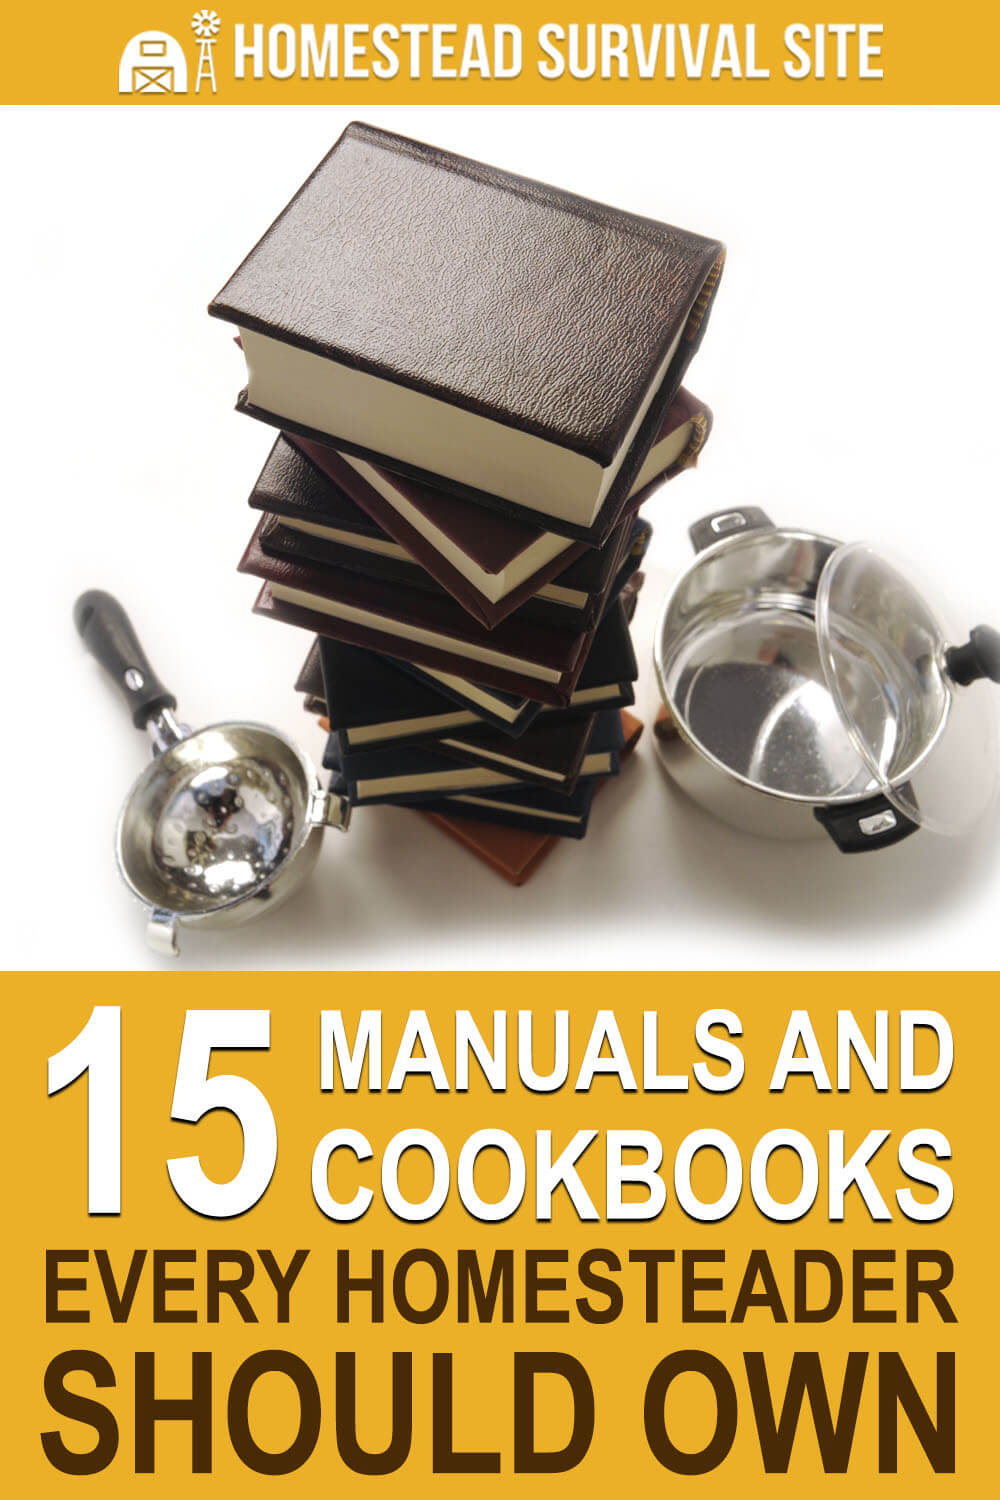 15 Manuals and Cookbooks Every Homesteader Should Own